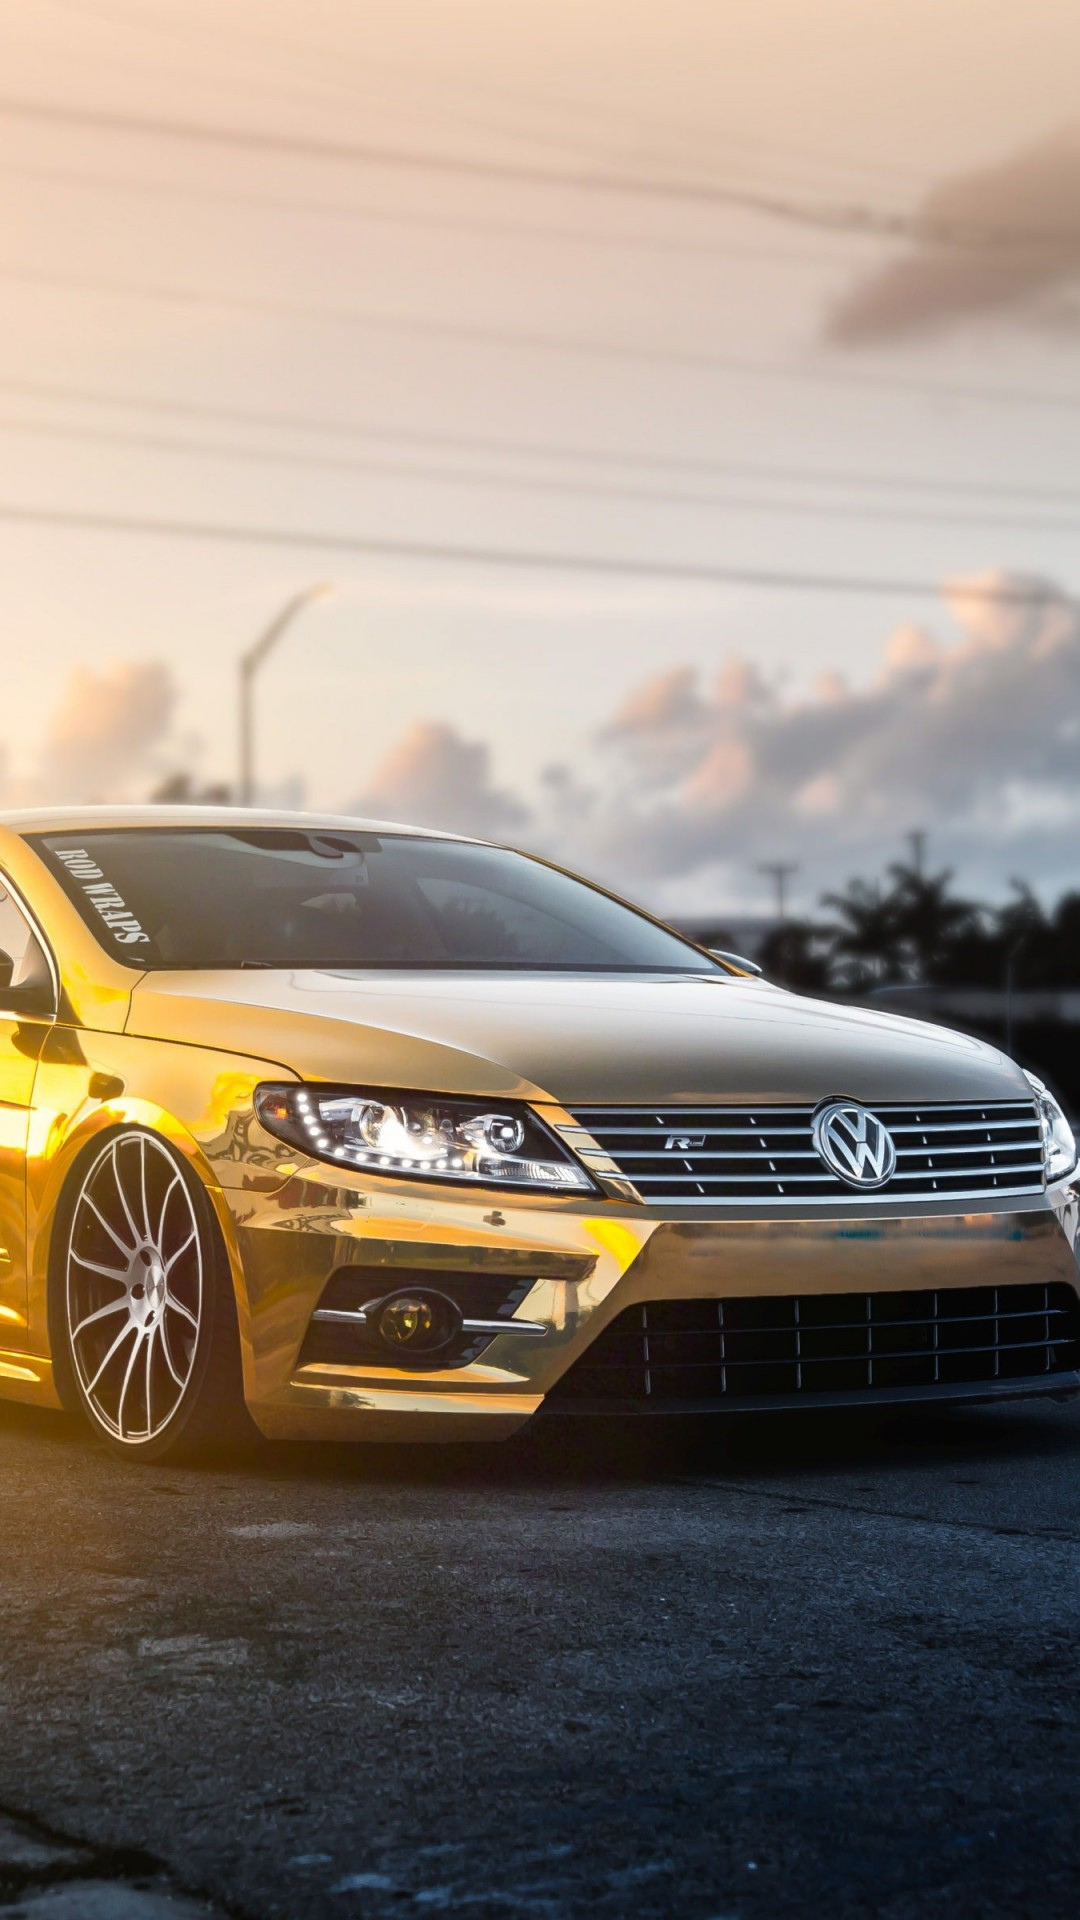 Golden Volkswagen Passat CC Wallpaper for HTC One